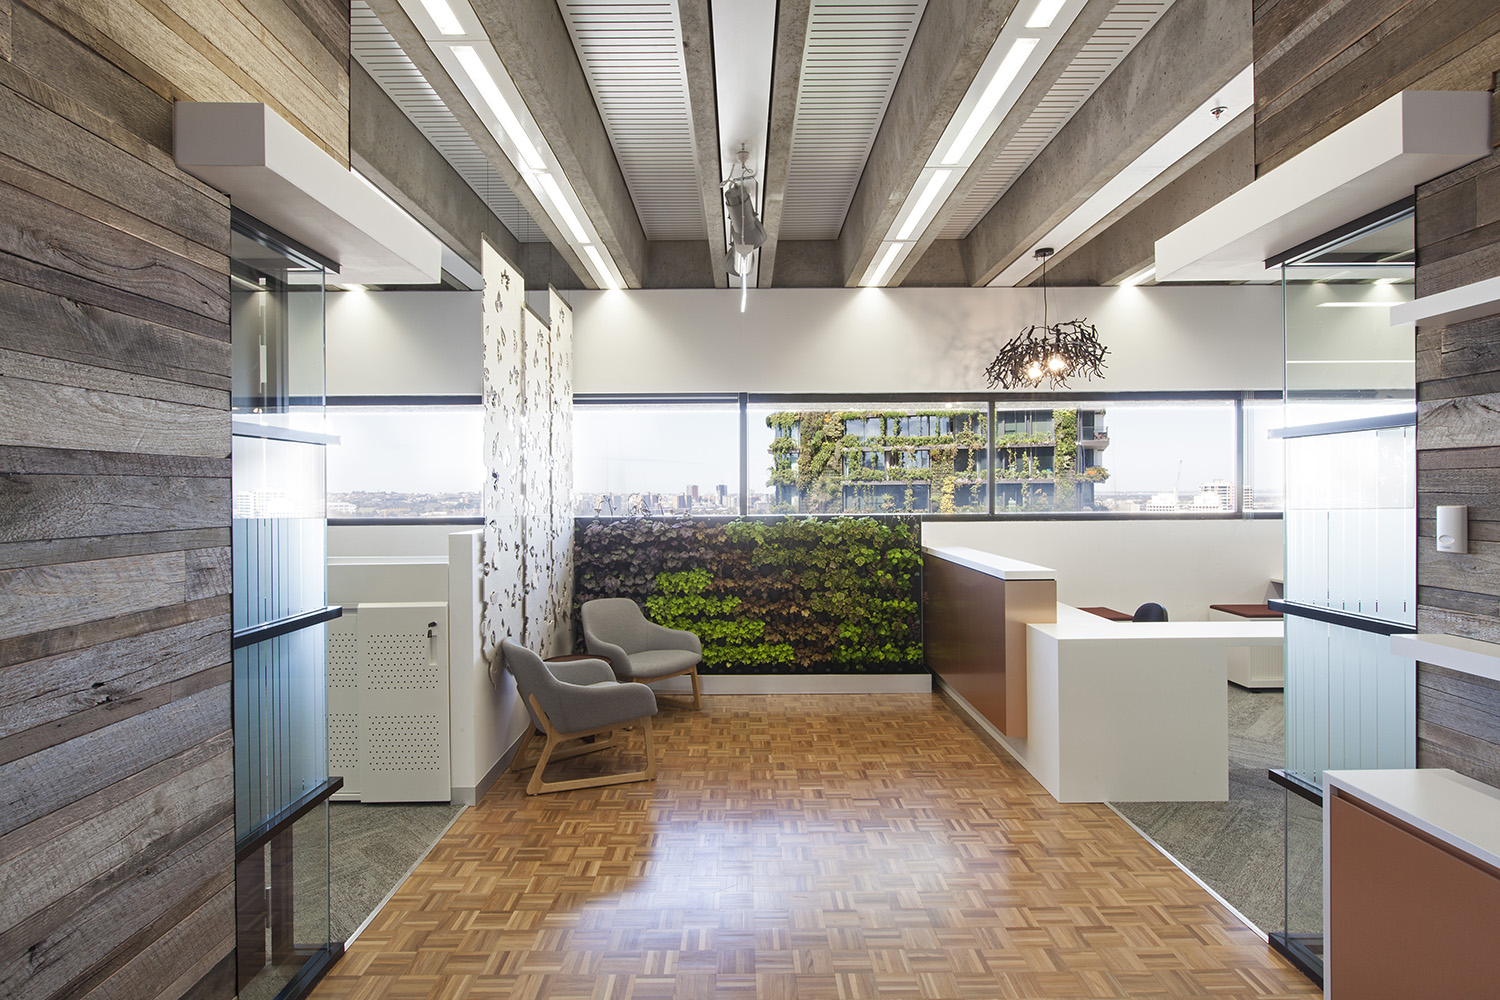 UTS Building 1 Levels 20 & 21 Office and Workplace Reception Desk and Foyer Interior Design – Gardner Wetherill GW 1